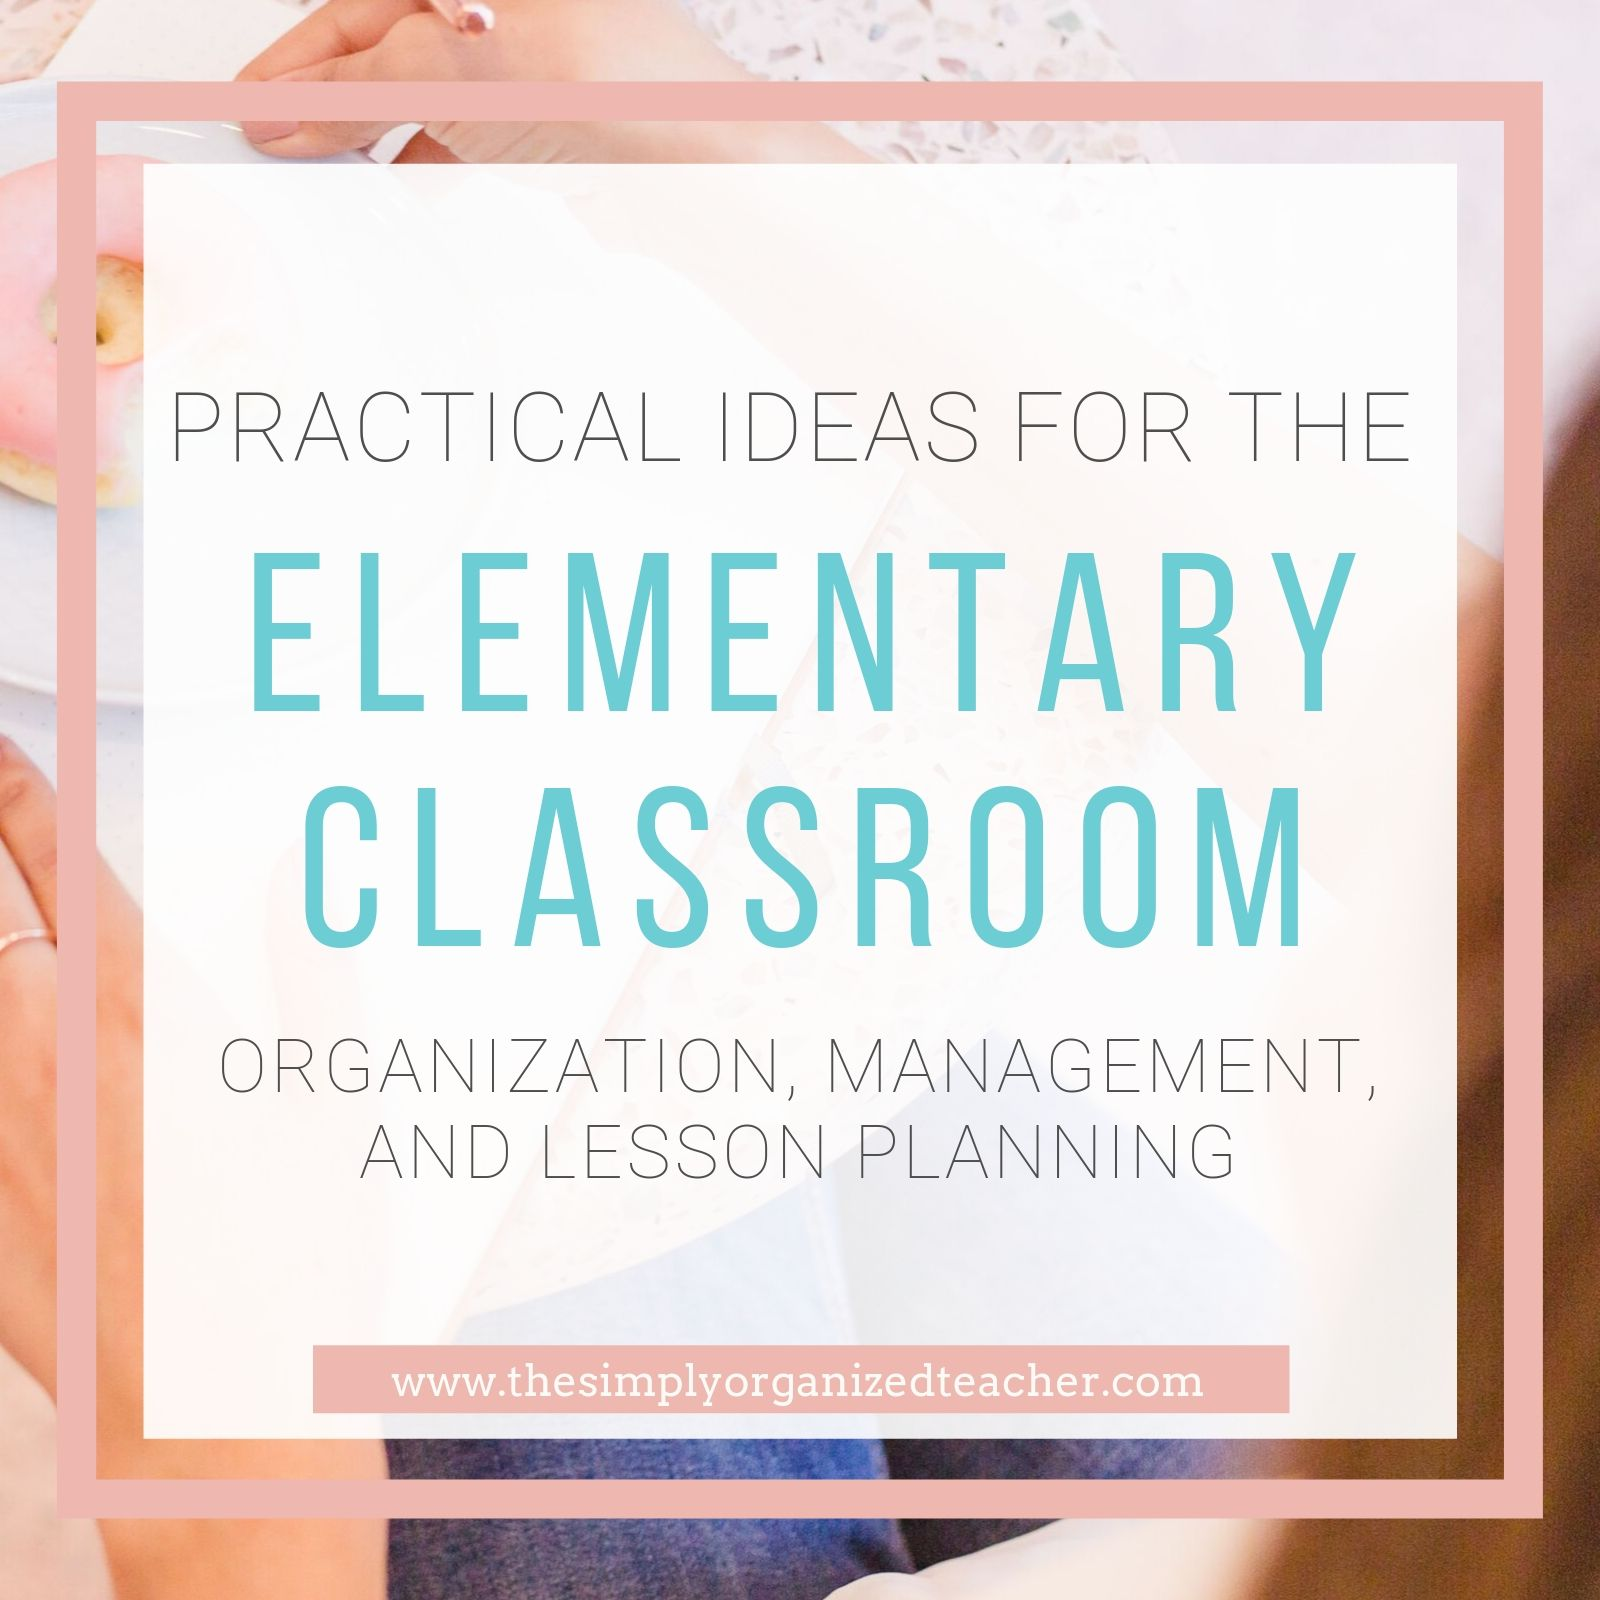 Struggling with out to organize and manage your classroom? This blog shares practical things you can do to improve your classroom organization, management, and lesson planning routine.